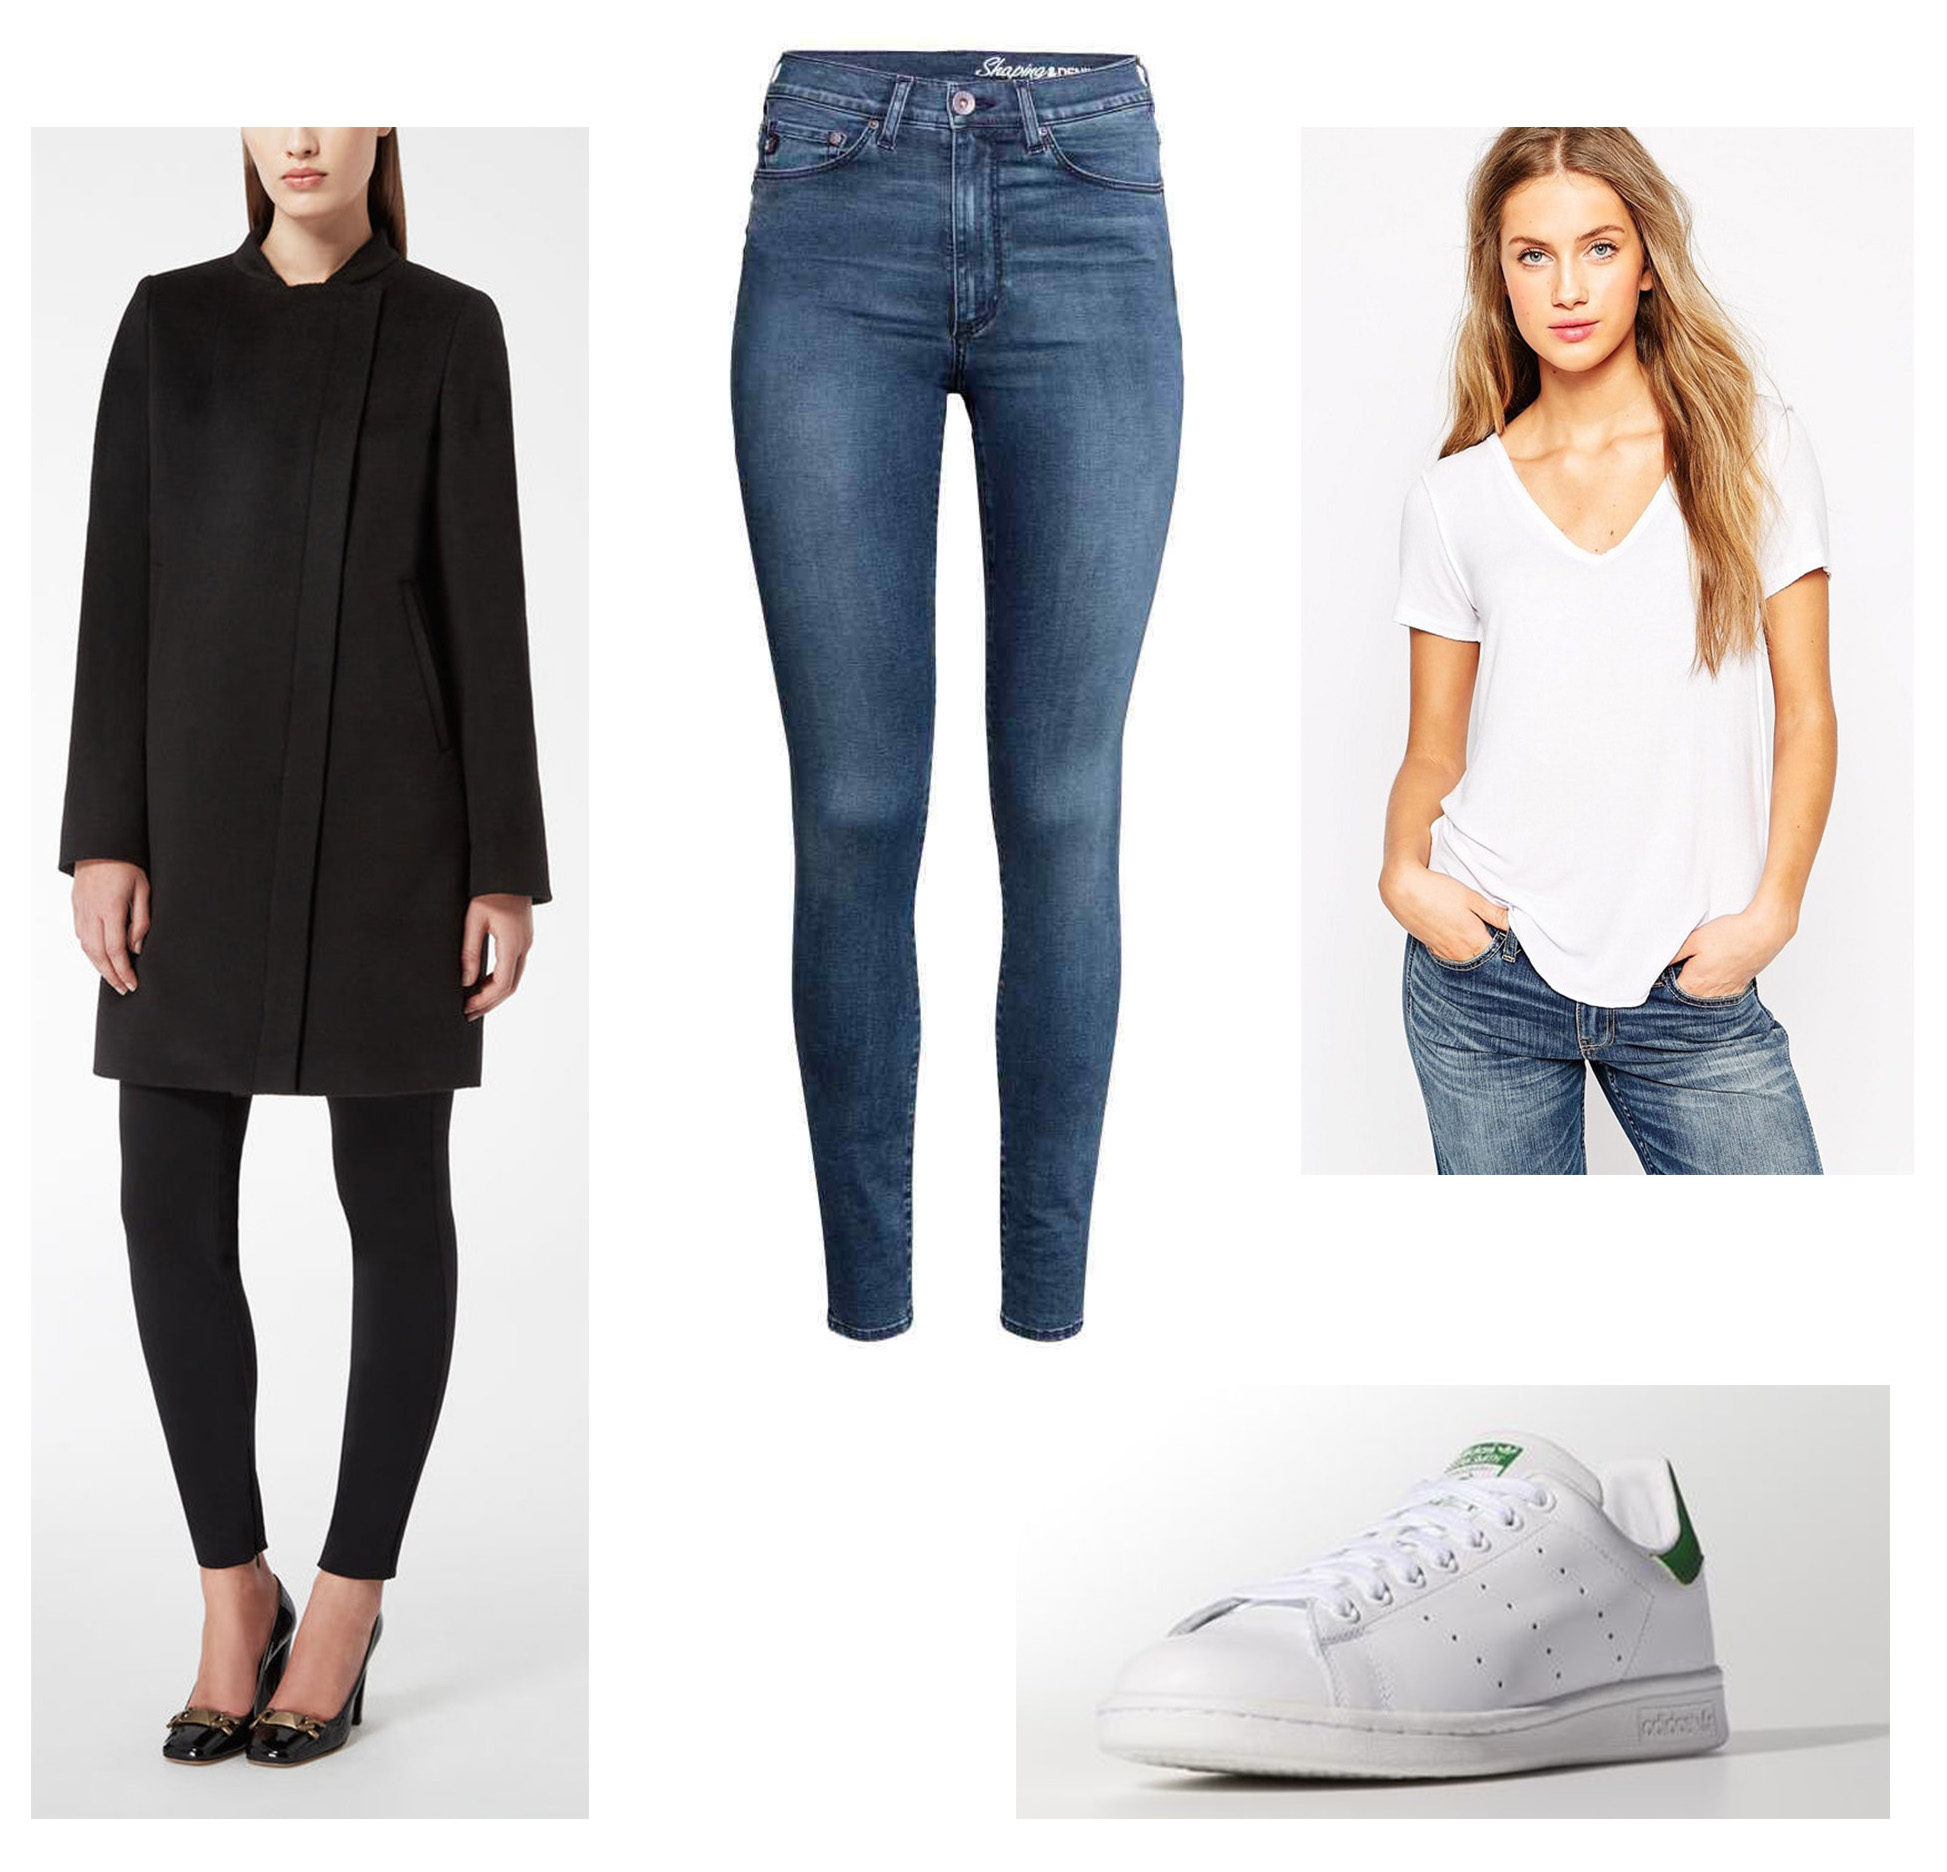 How to copy Kendall's style - Airport outfit